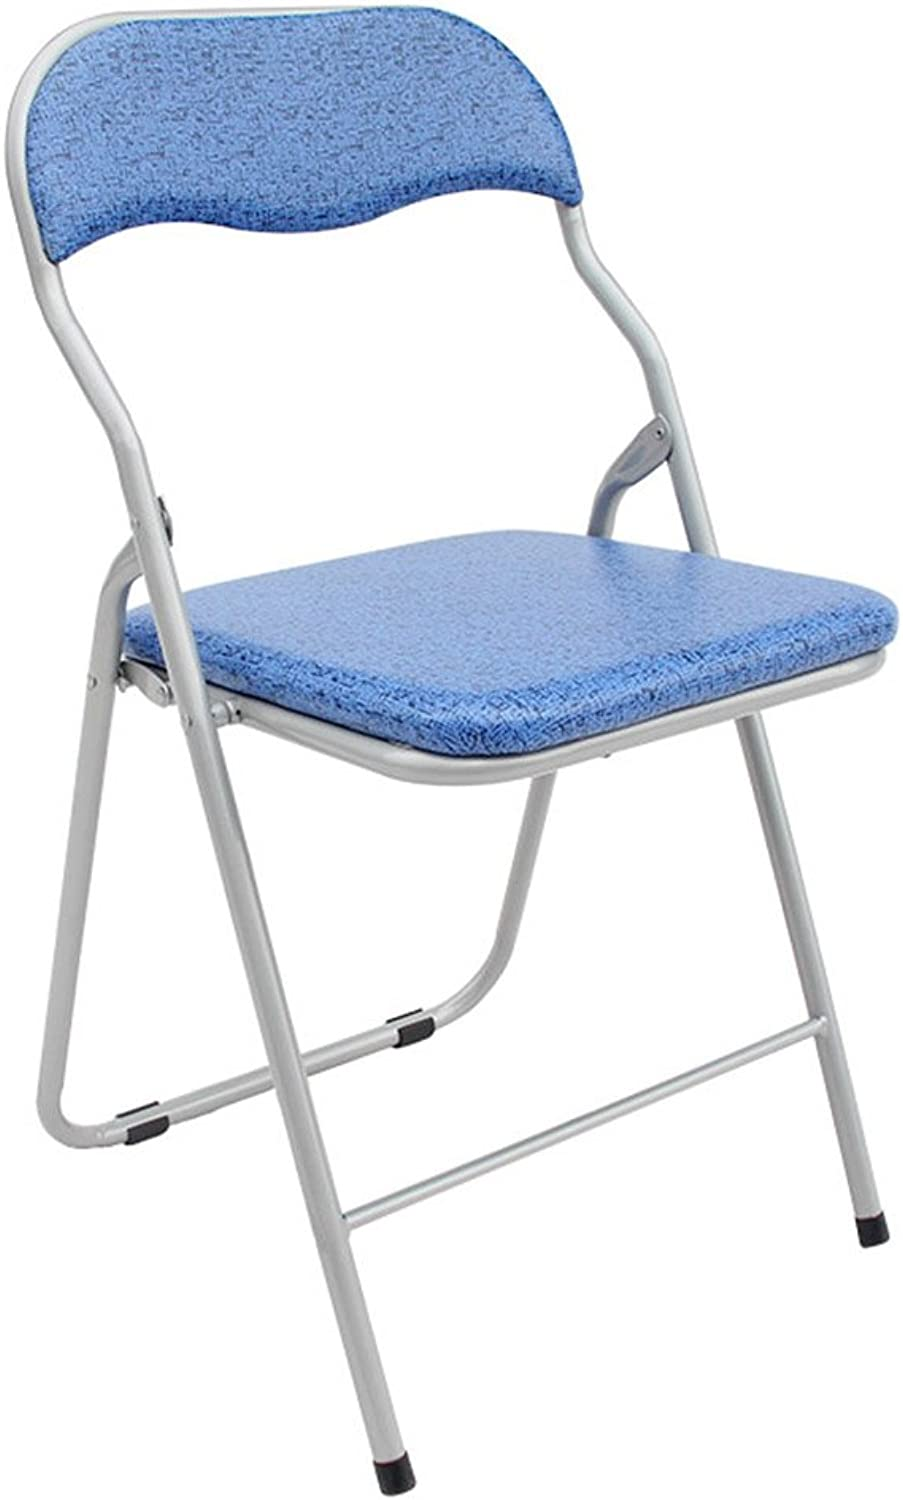 ALUS- Dining Chairs Office Chairs Training Chairs Meeting Chairs Back Chairs Outdoor Portable Tables and Chairs